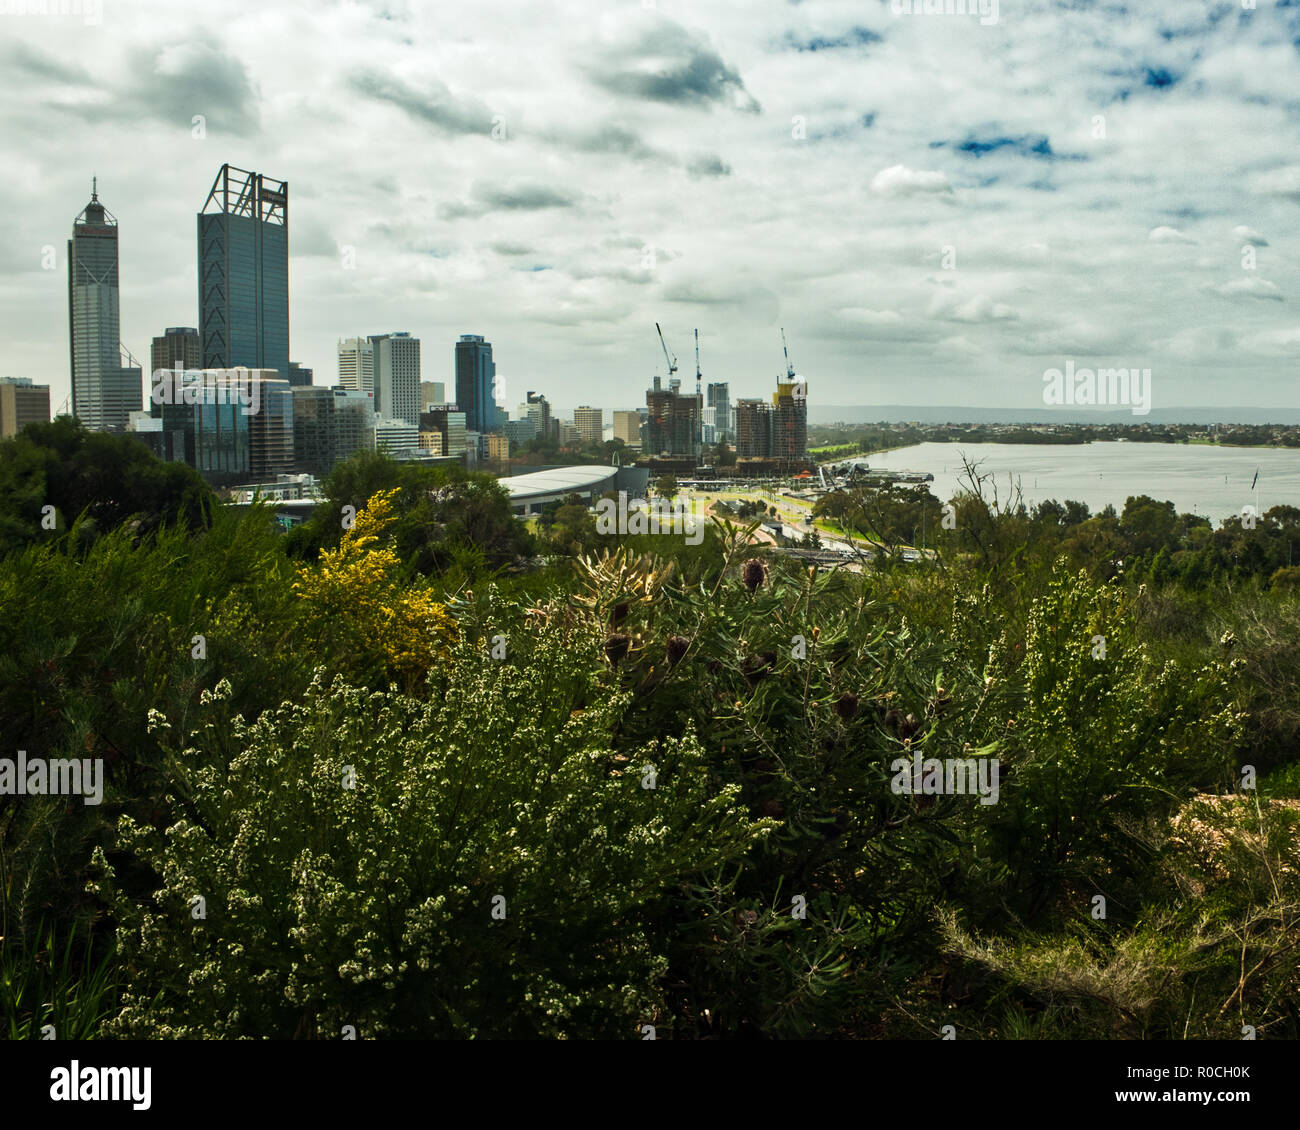 Construction work Perth Skyline by Swan River - Stock Image